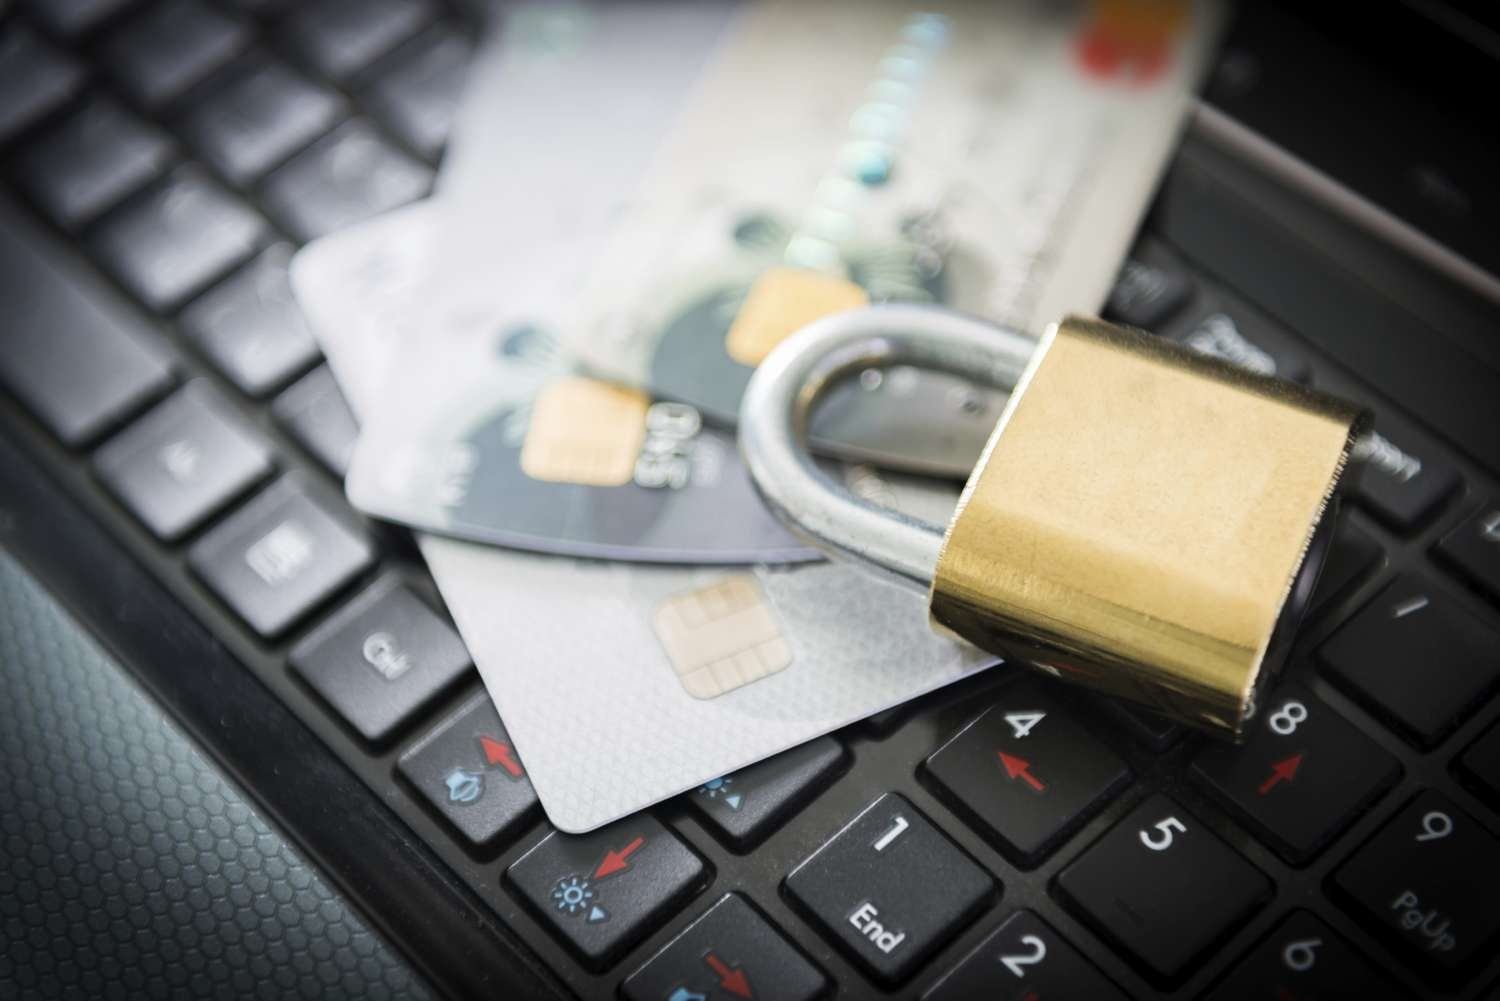 Move fraud detection from hindsight to insight to foresight